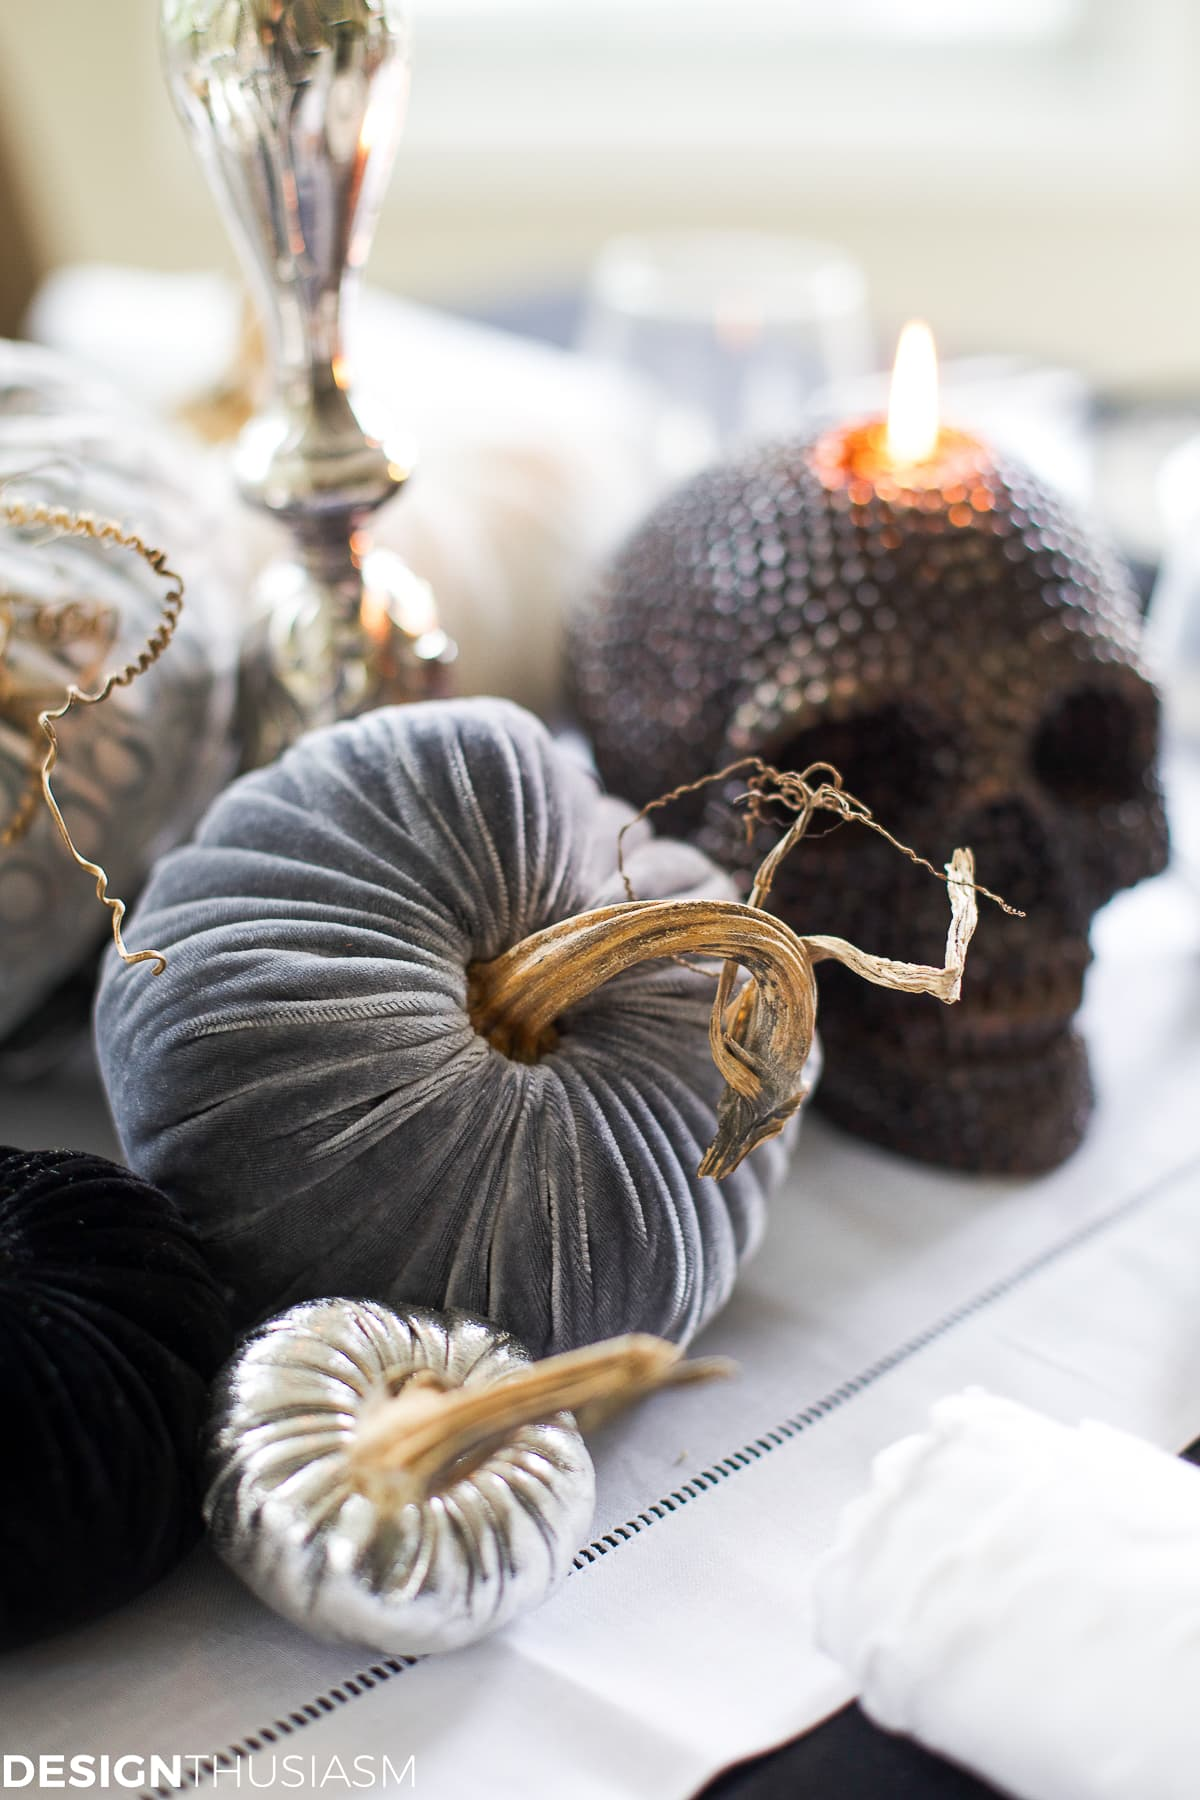 velvet pumpkins for Halloween decor ideas